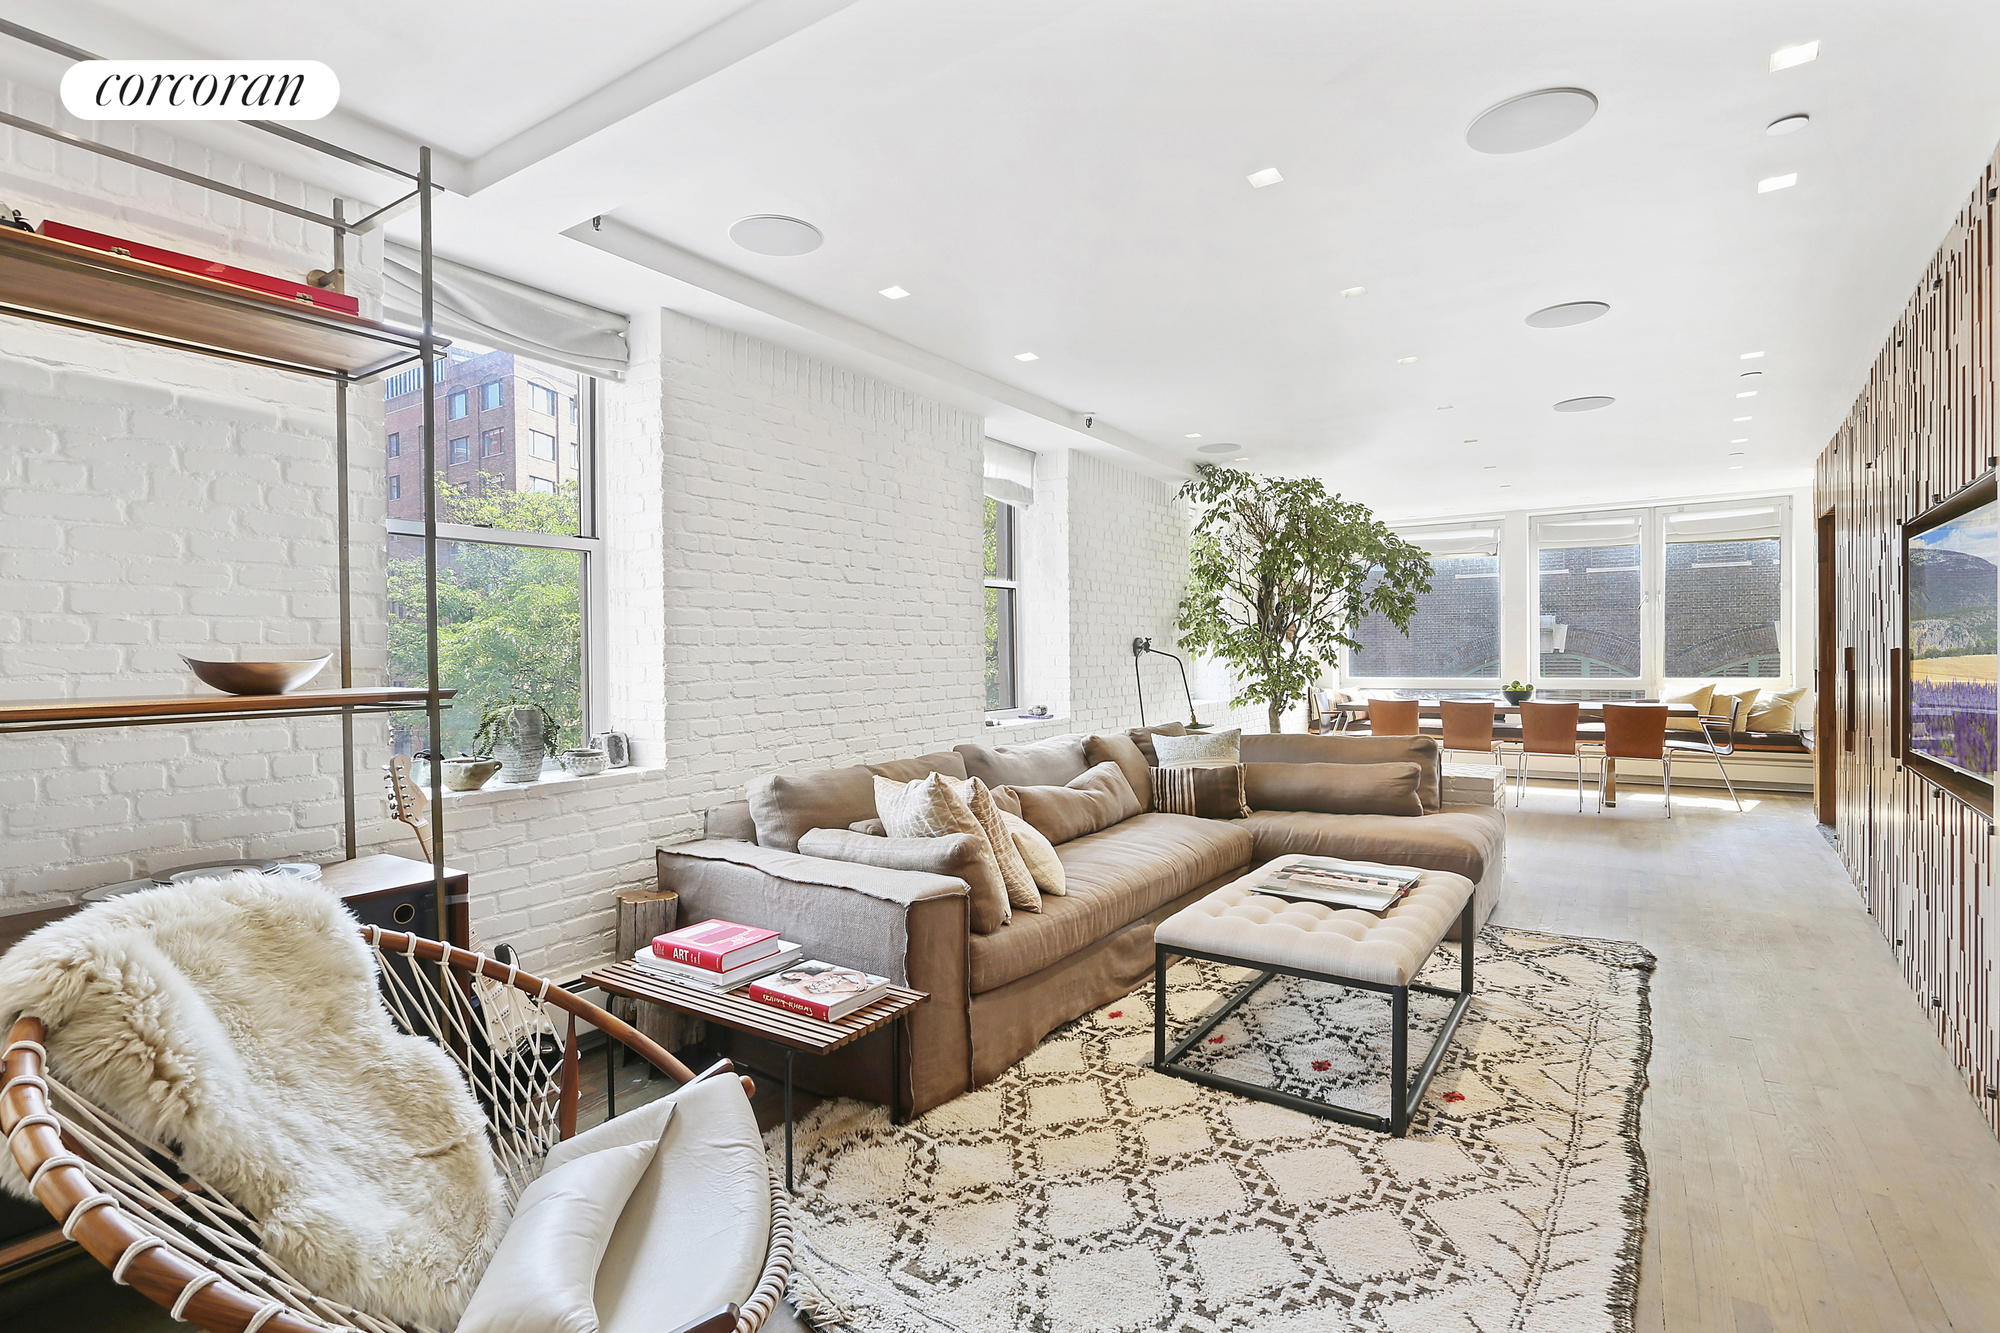 692 Greenwich Street, 3 FL, Living Room